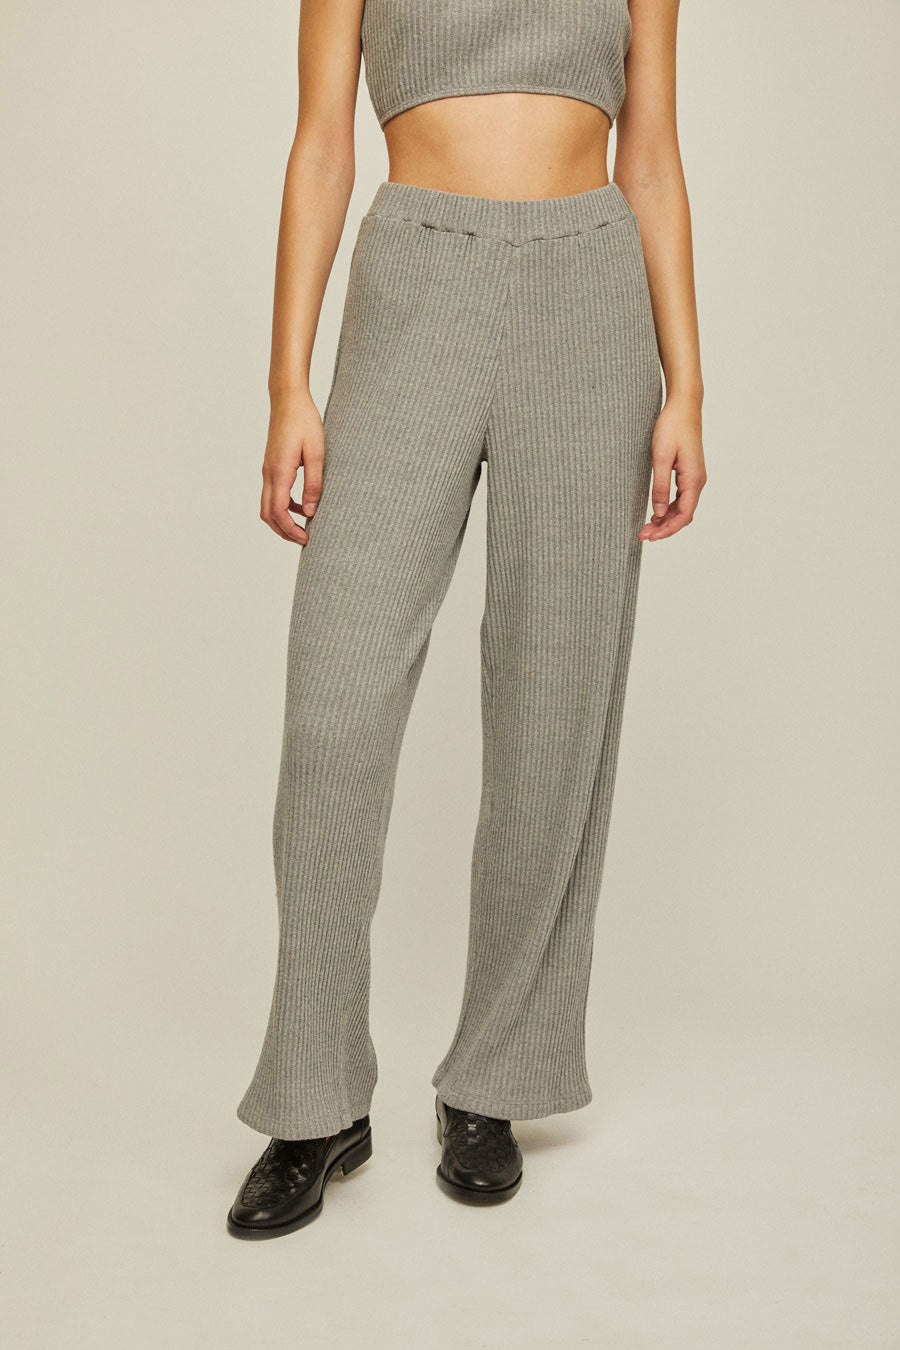 ANDREA | High Waisted Knit Pants